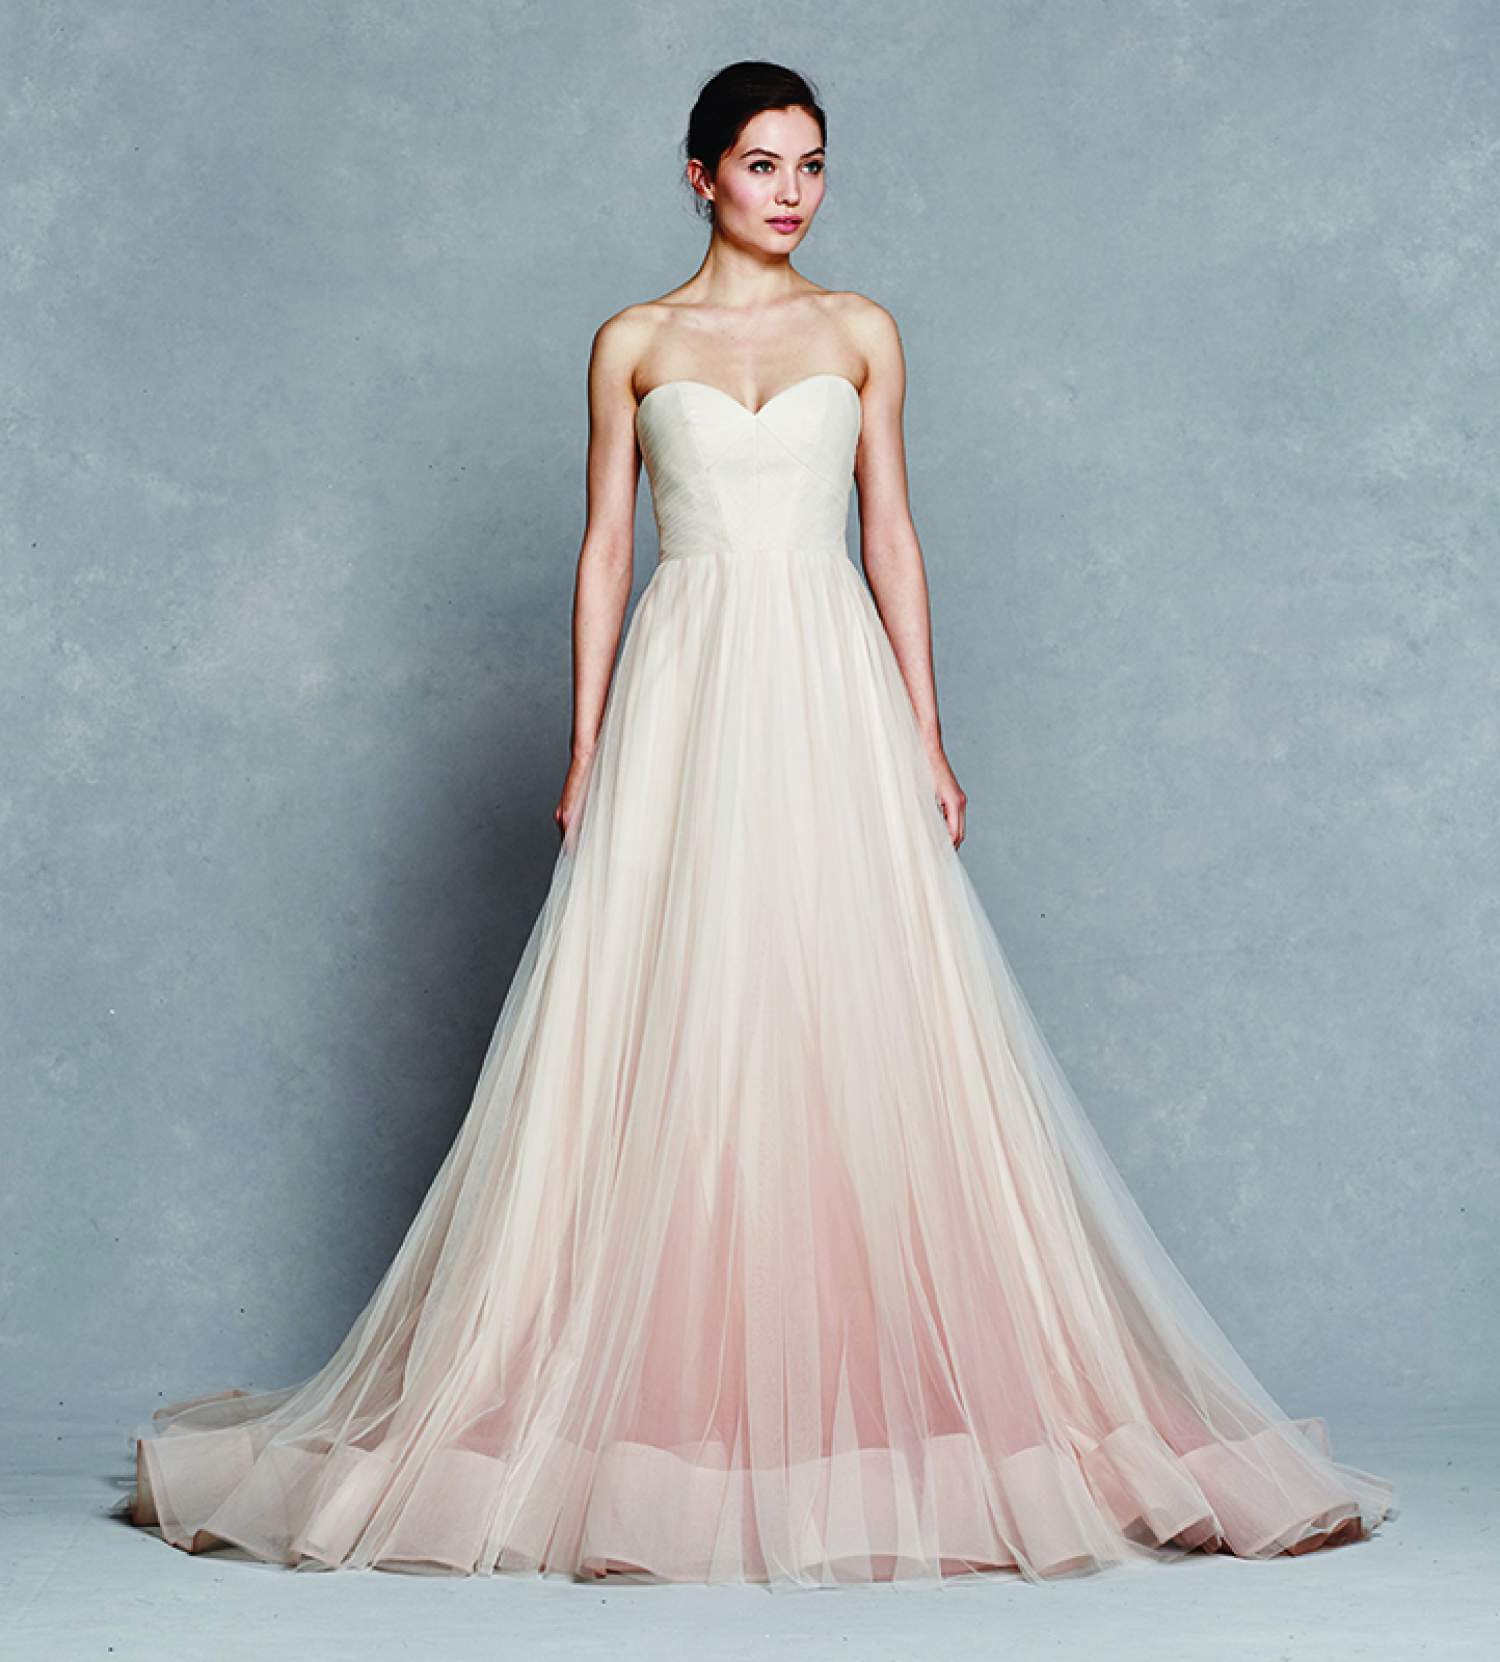 Kelly Faetanini pastel wedding dress